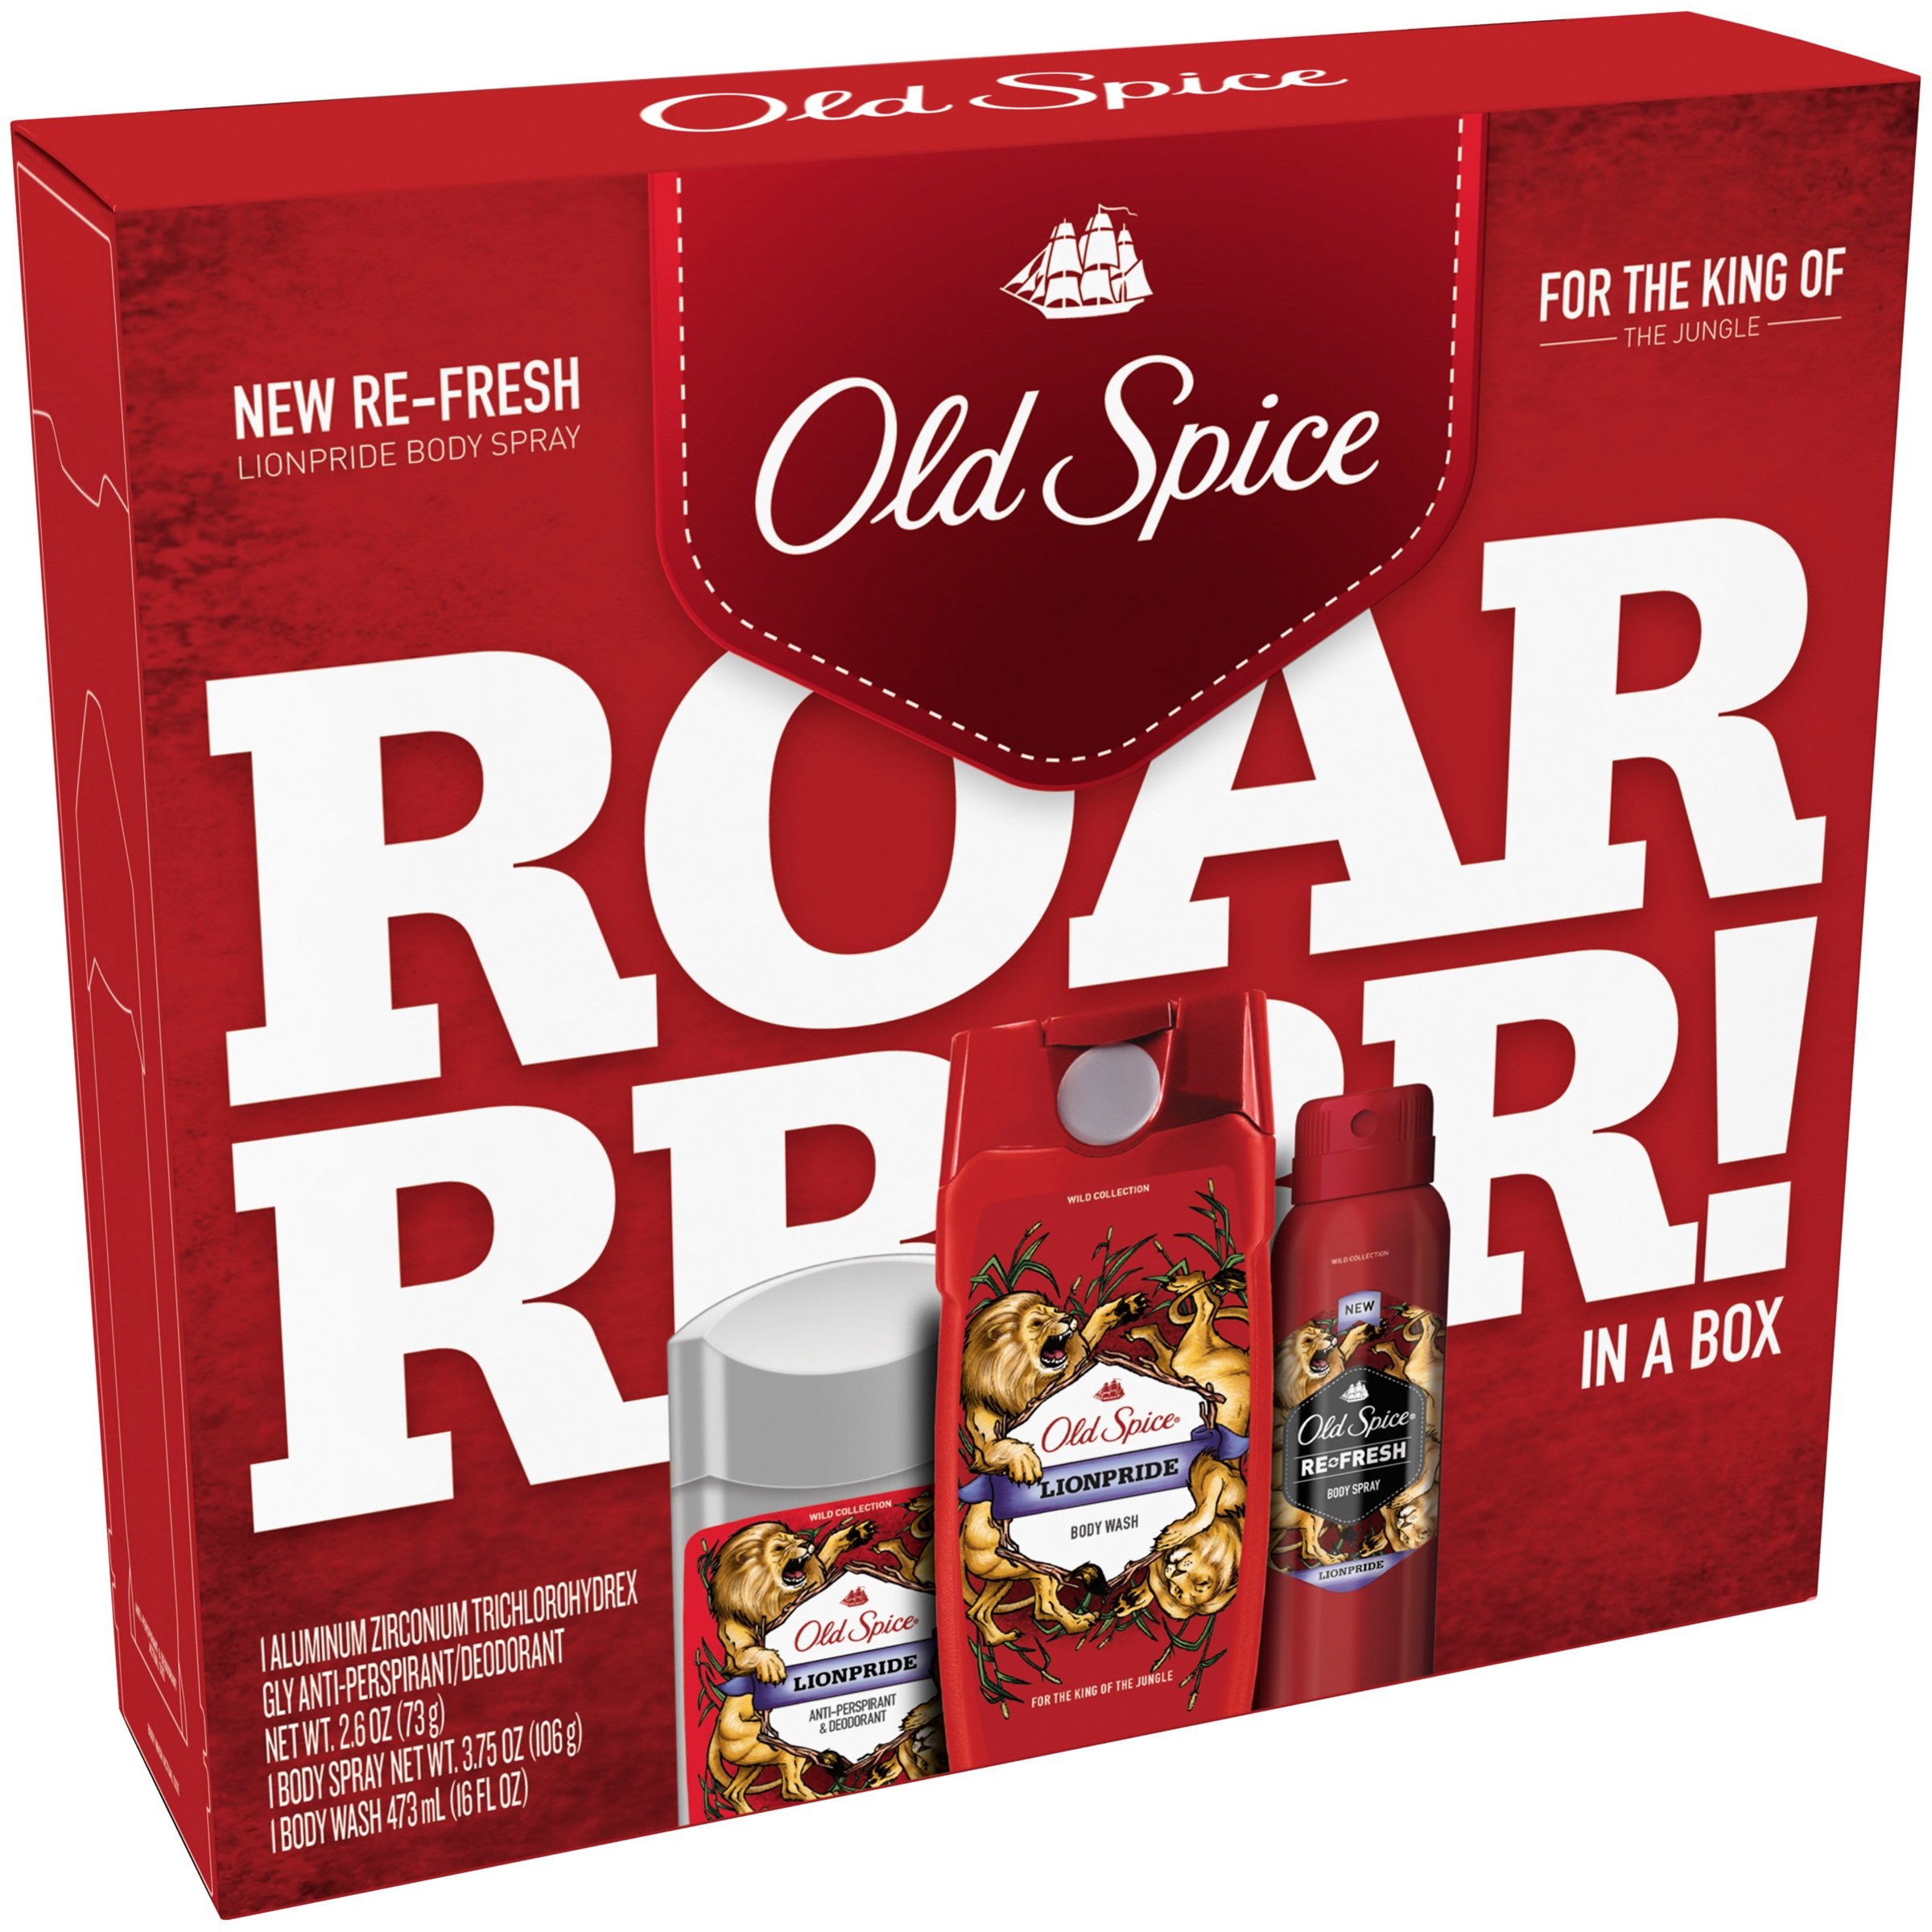 Old Spice® Wild Collection Lionpride 3 pc Regimen Pack